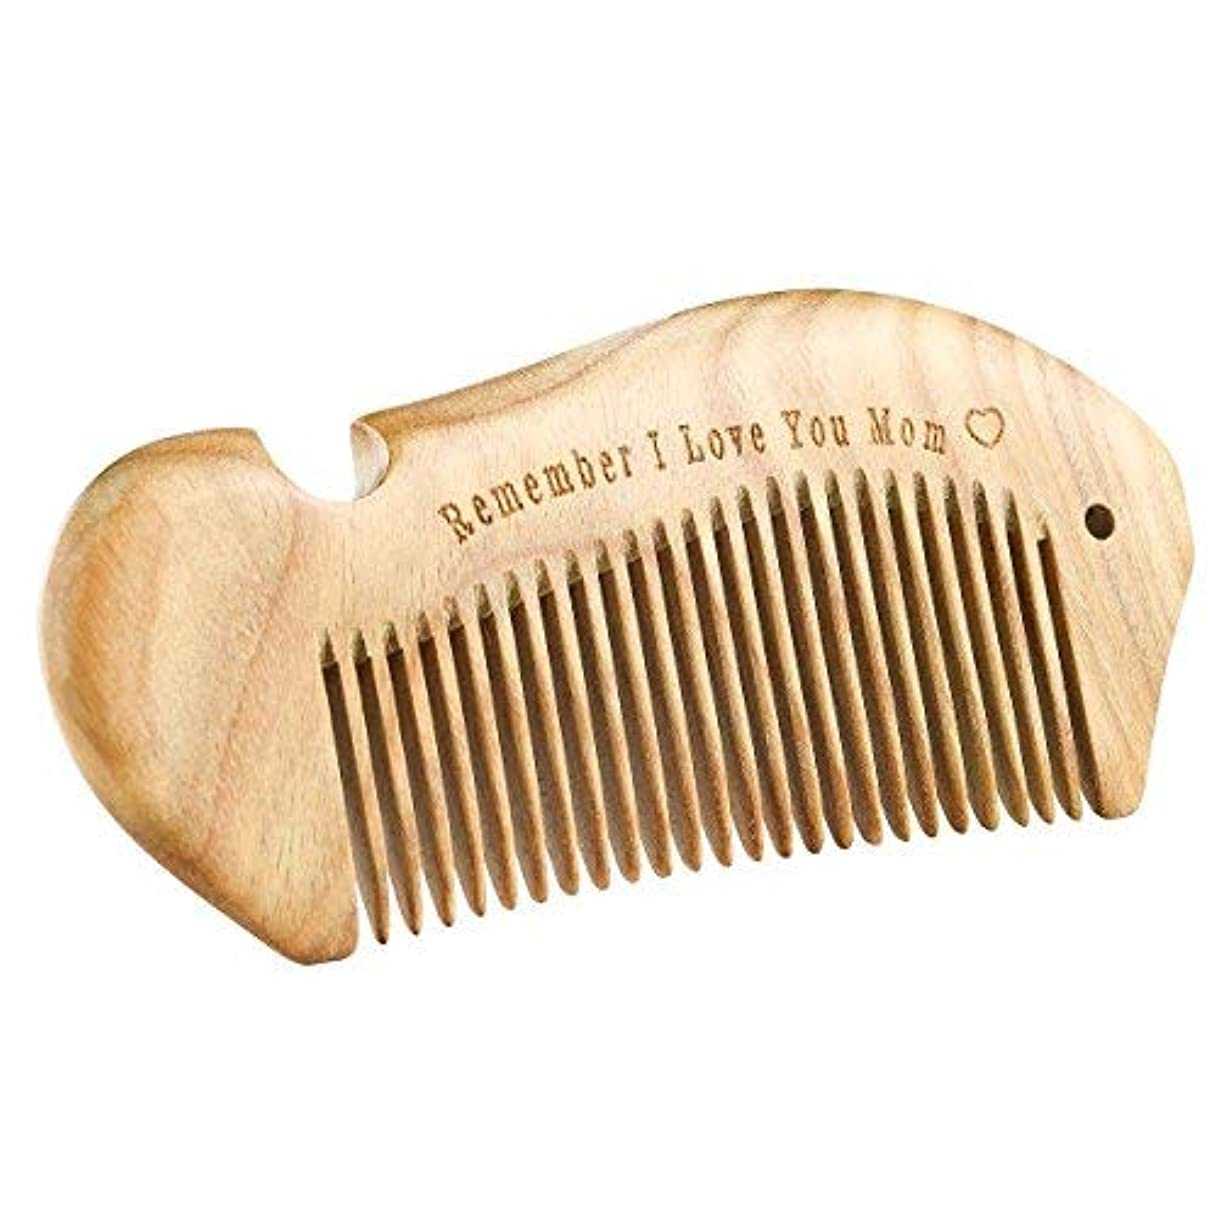 抽象化検査官抑圧するi.VALUX Handmade Sandalwood Hair Comb,No Static Natural Aroma Wood Comb for Curly Hair [並行輸入品]